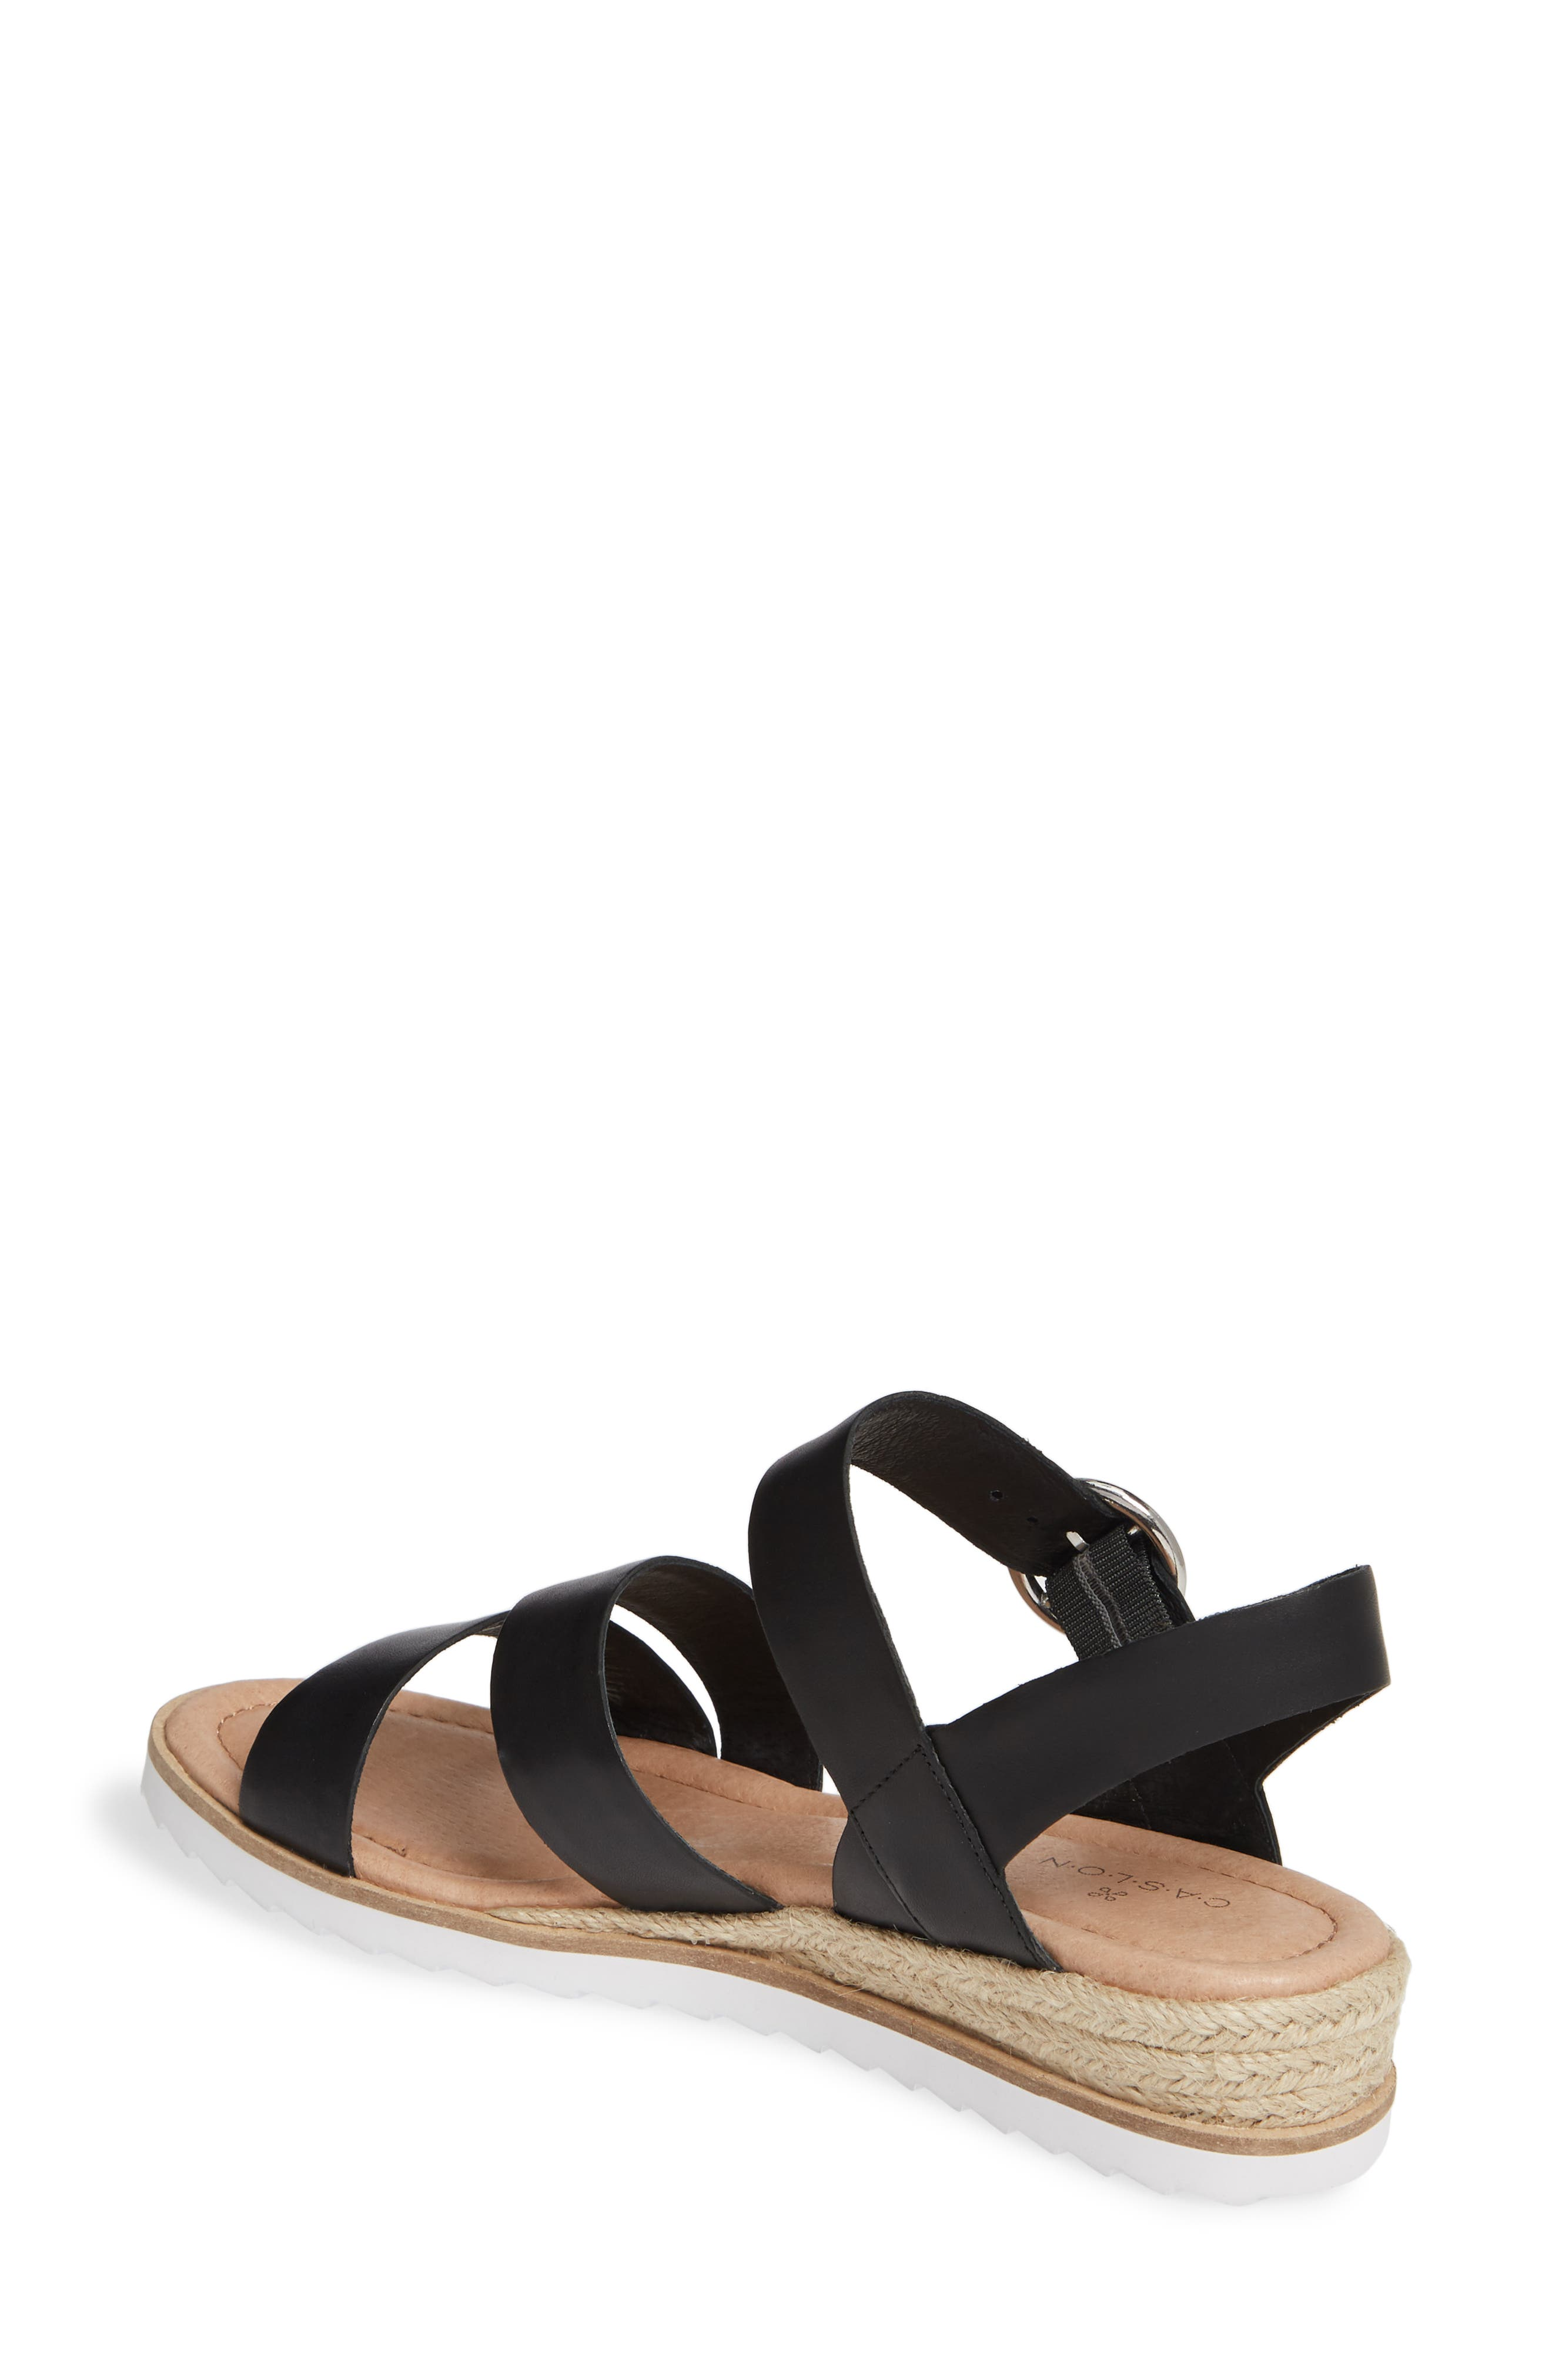 CASLON<SUP>®</SUP>, Caslon Cameron Espadrille Wedge Sandal, Alternate thumbnail 2, color, BLACK LEATHER